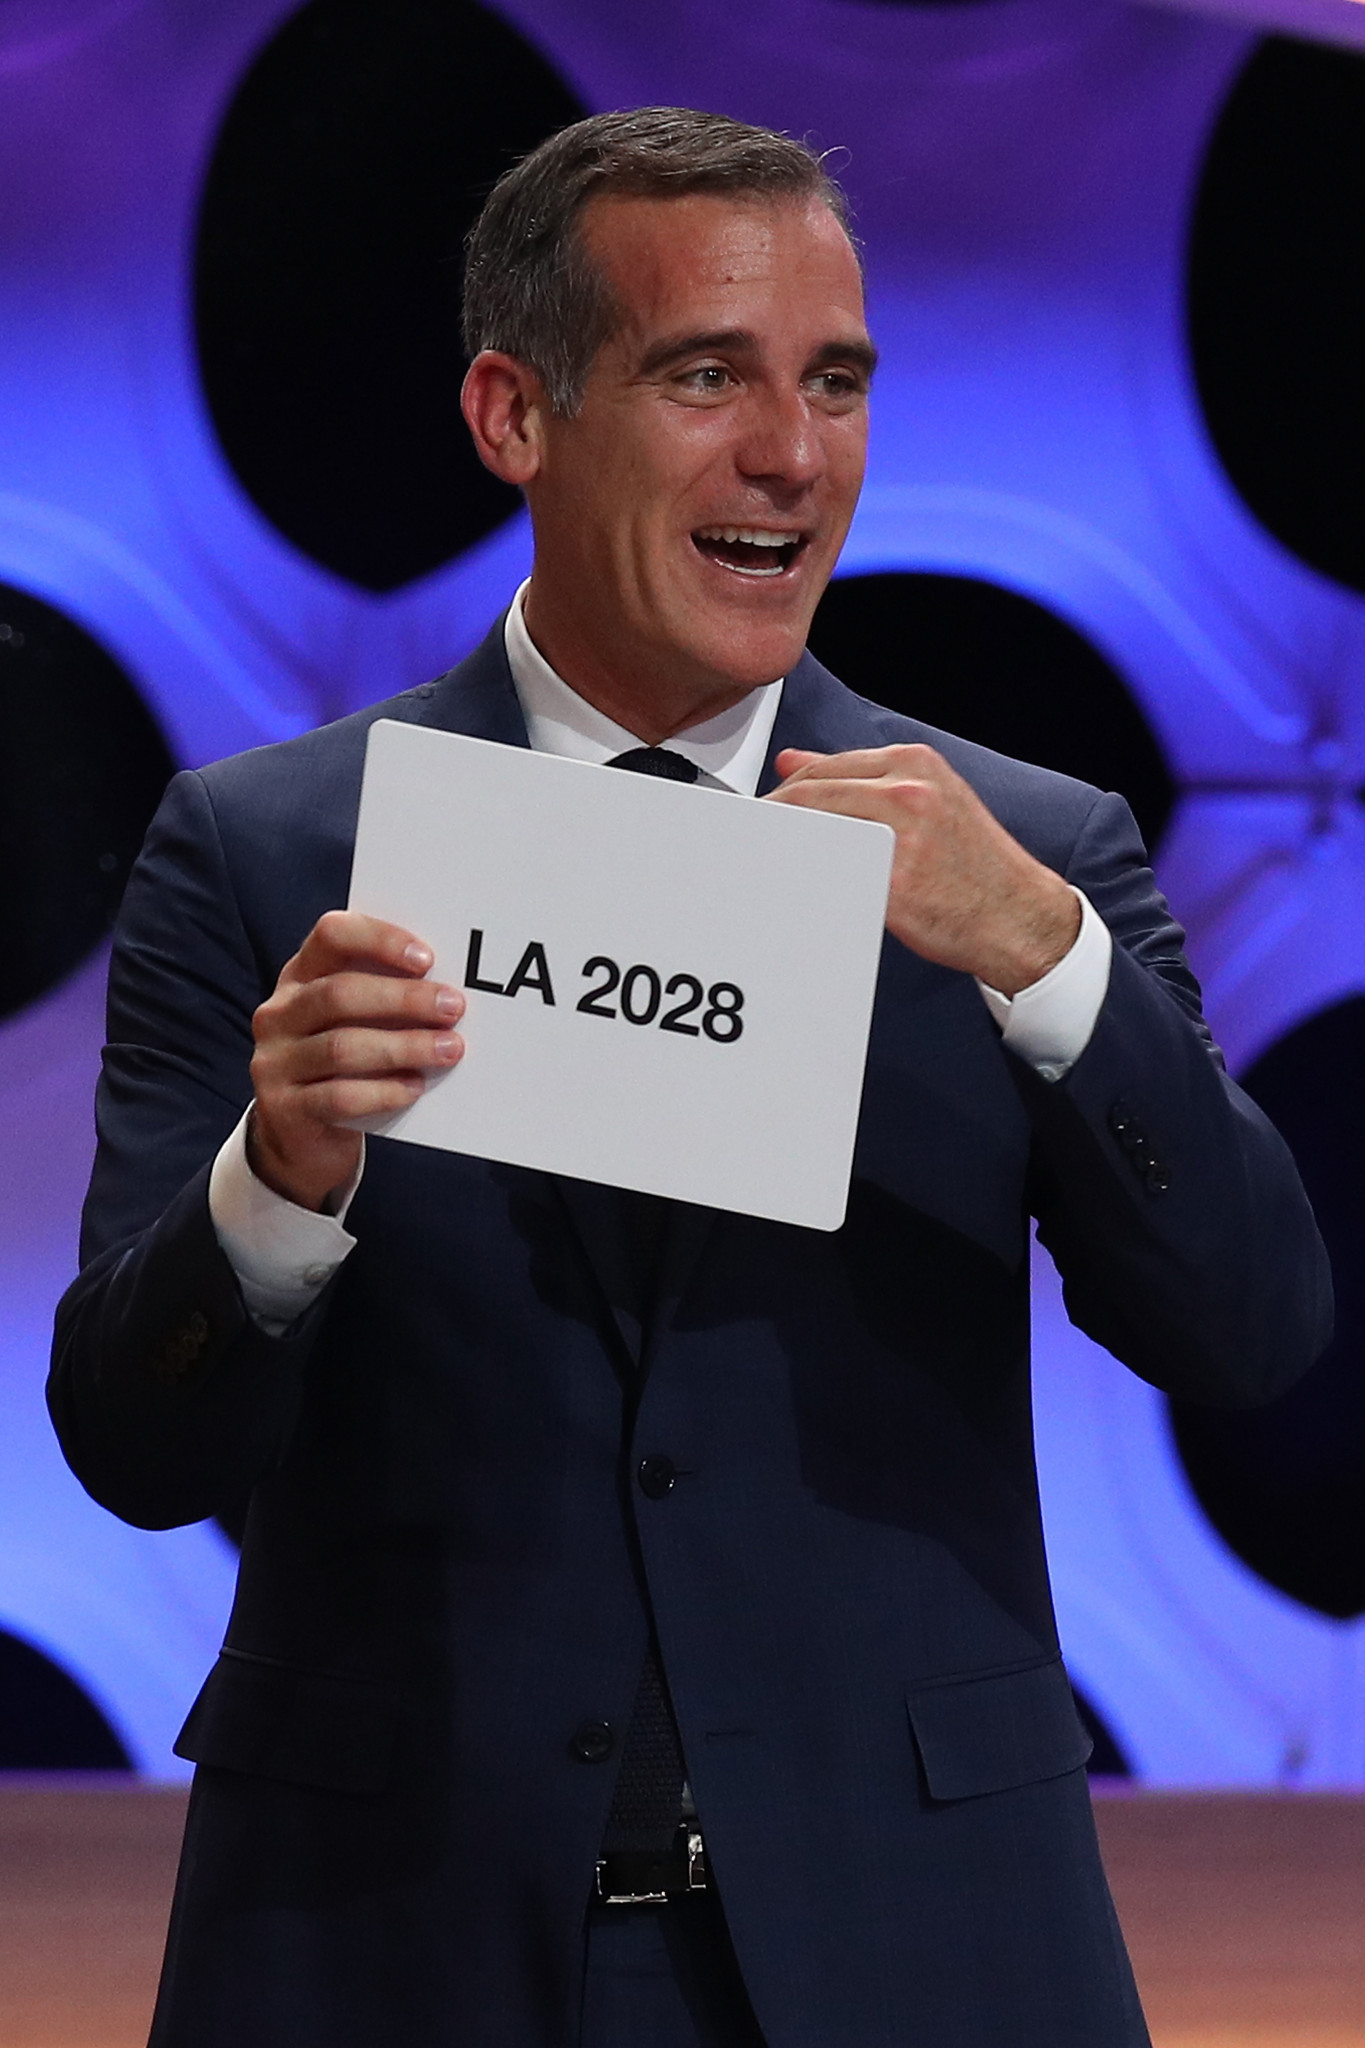 Los Angeles Mayor Eric Garcetti played a key role in the city being awarded the Olympic Games for a third time ©Getty Images